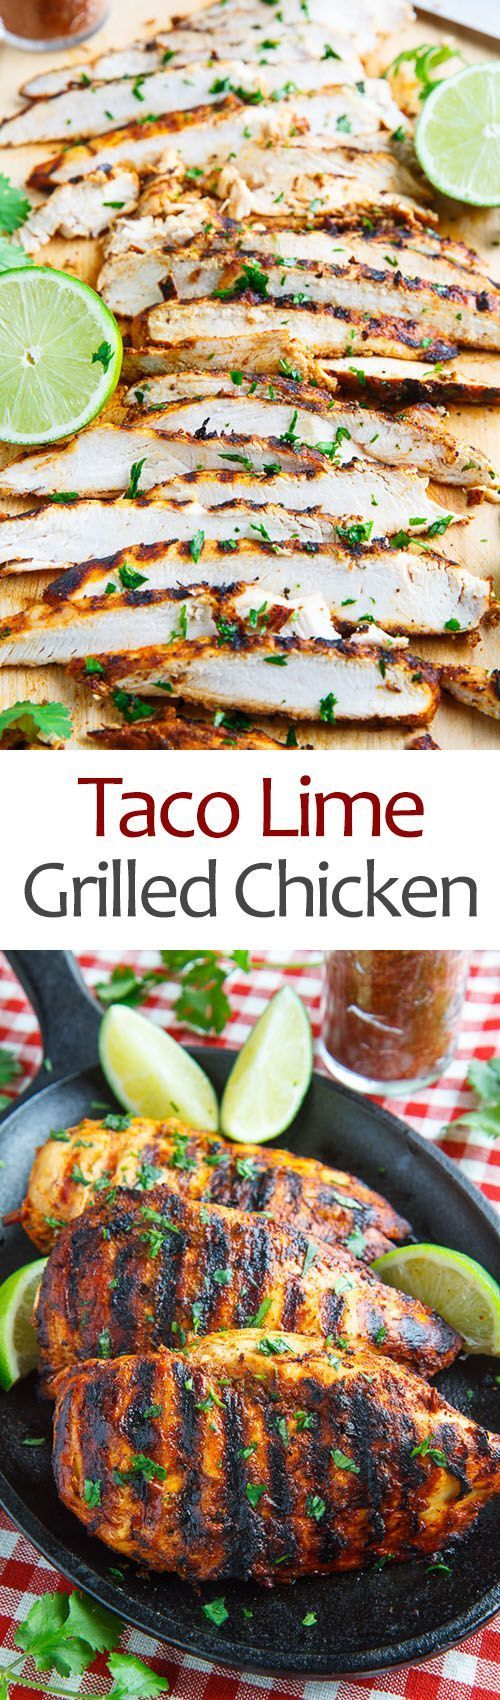 Taco Lime Grilled Chicken |  This would be great on its own or in some tortillas.